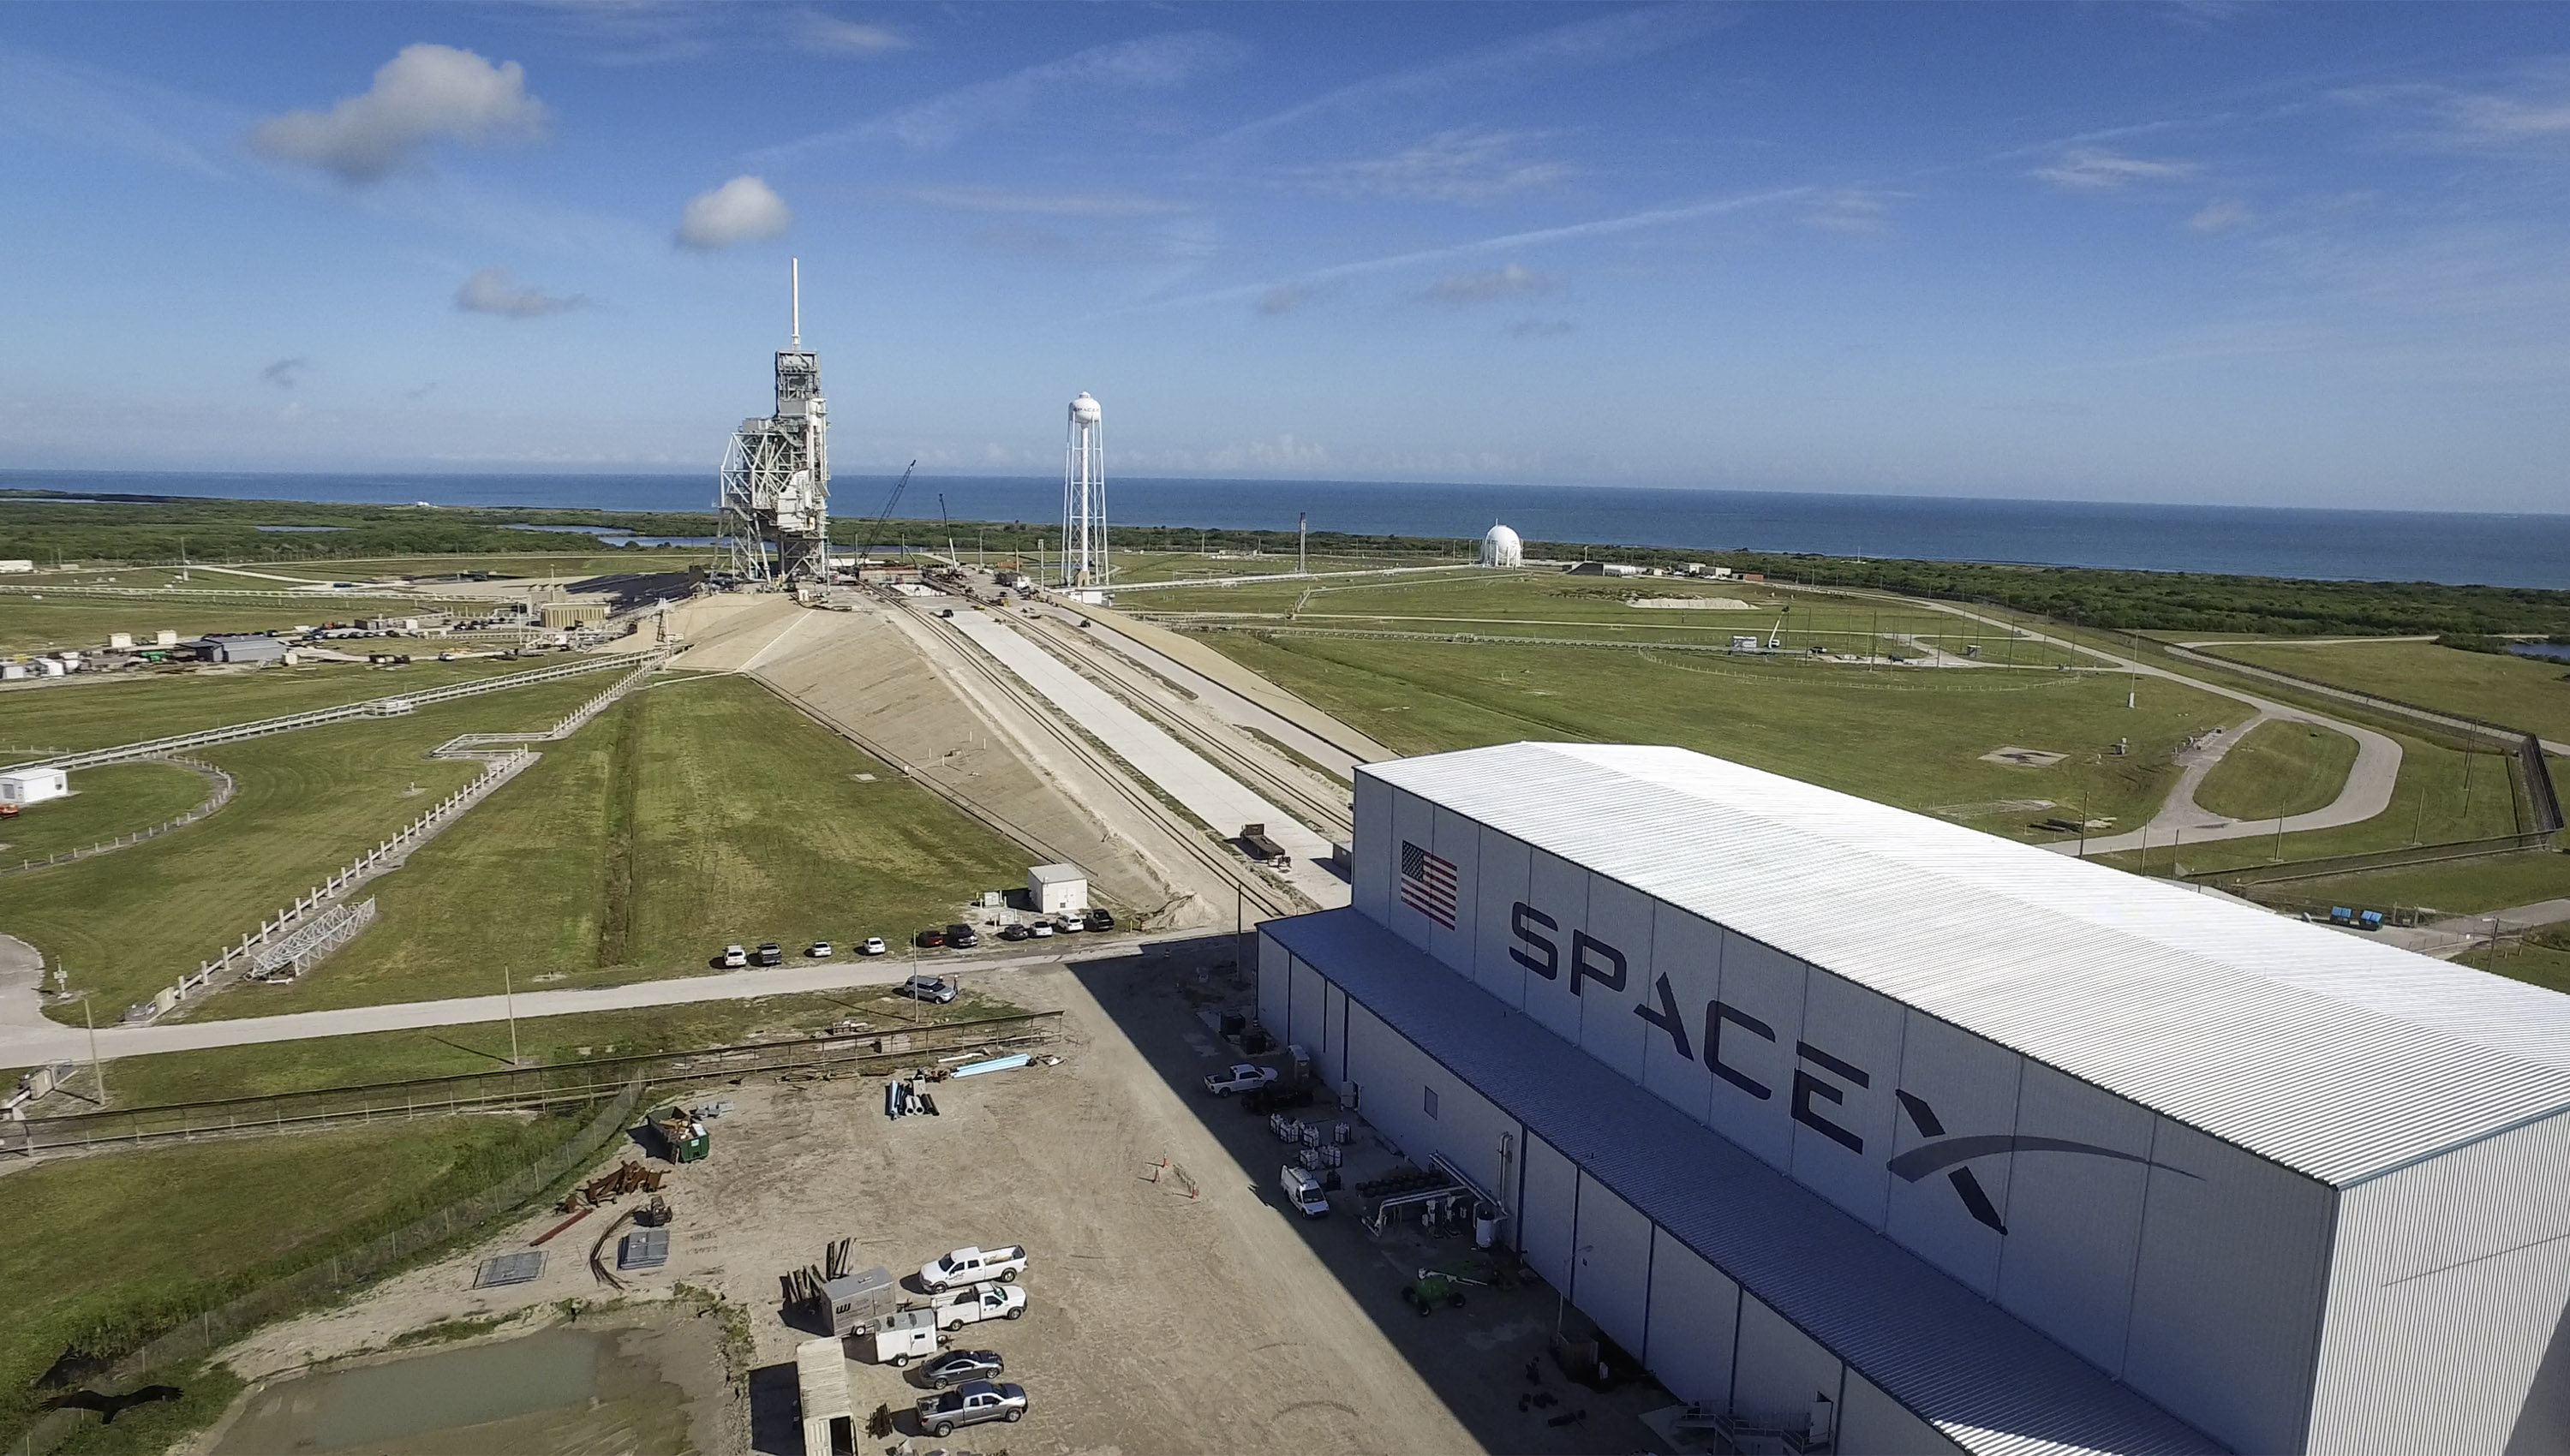 SpaceX's Latest Test Brings Rockets Back to NASA's Most Famous Launch Pad